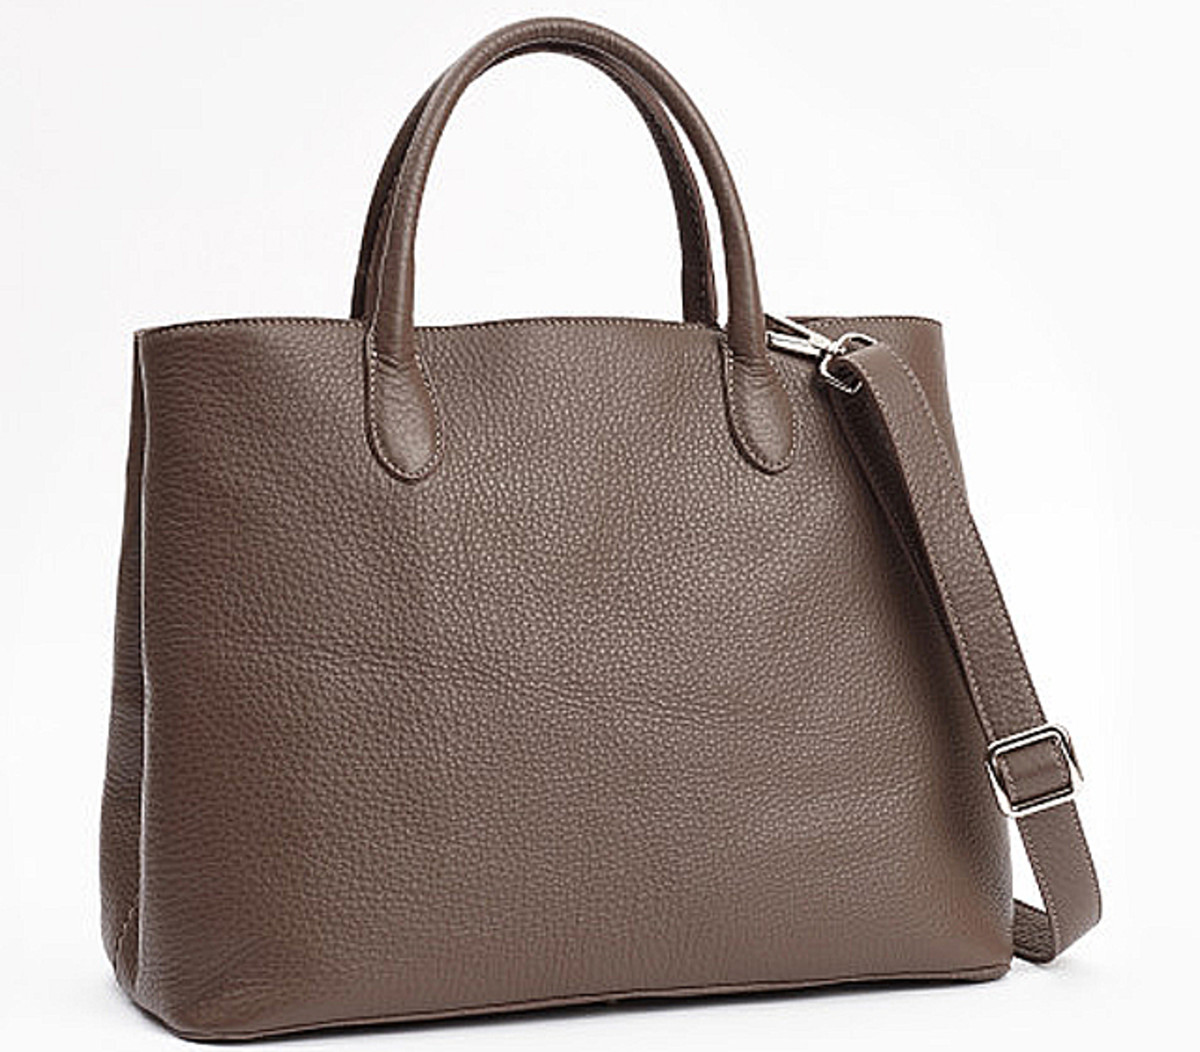 ROOTS BAGS_DAILY DOUBLE KALAHARI PRESTIGE LEATHER